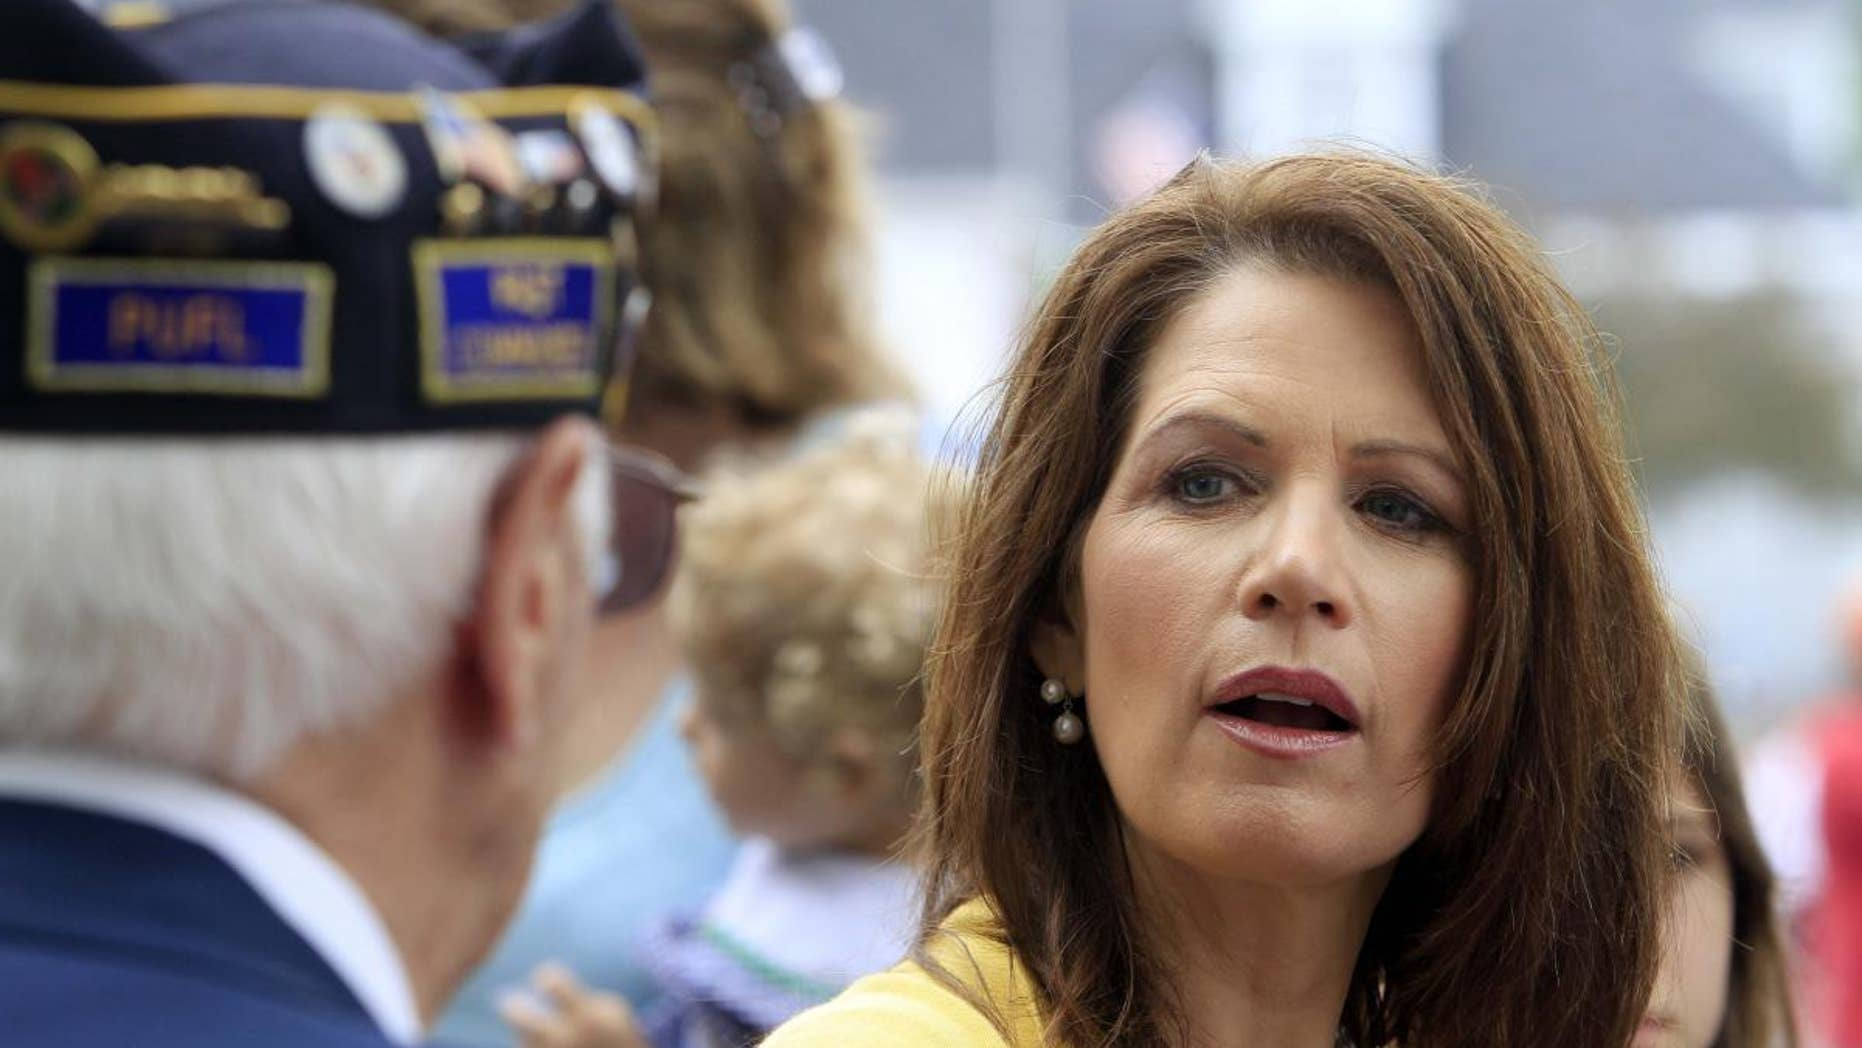 Minnesota Rep. Michele Bachmann speaks to a veteran at a North Hampton, NH Memorial Day parade Monday. (AP Photo)